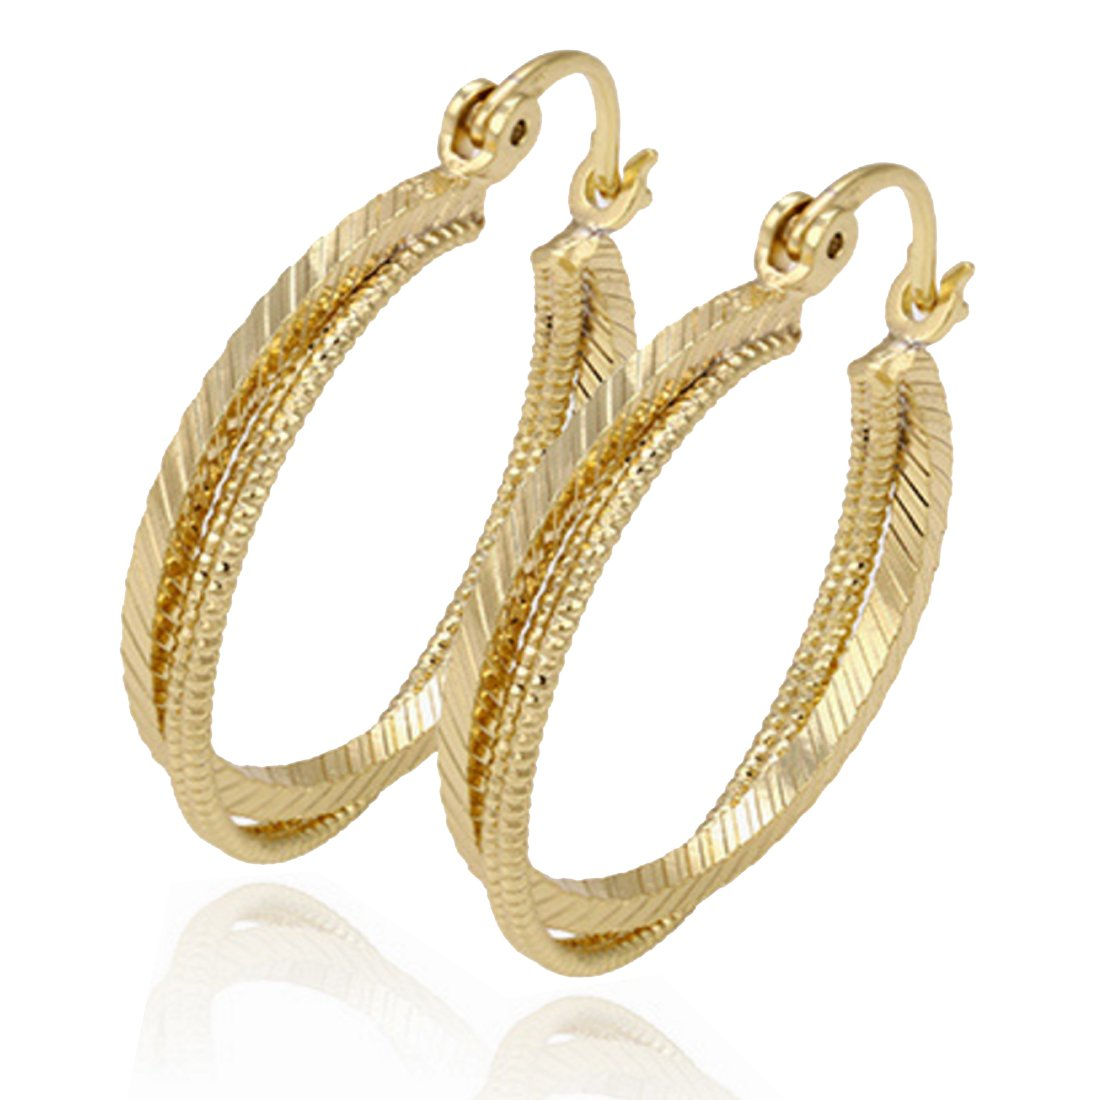 Juvel Jewelry Fashion 14K Gold Plated Earring Hoop Three Round Style For Anniversary